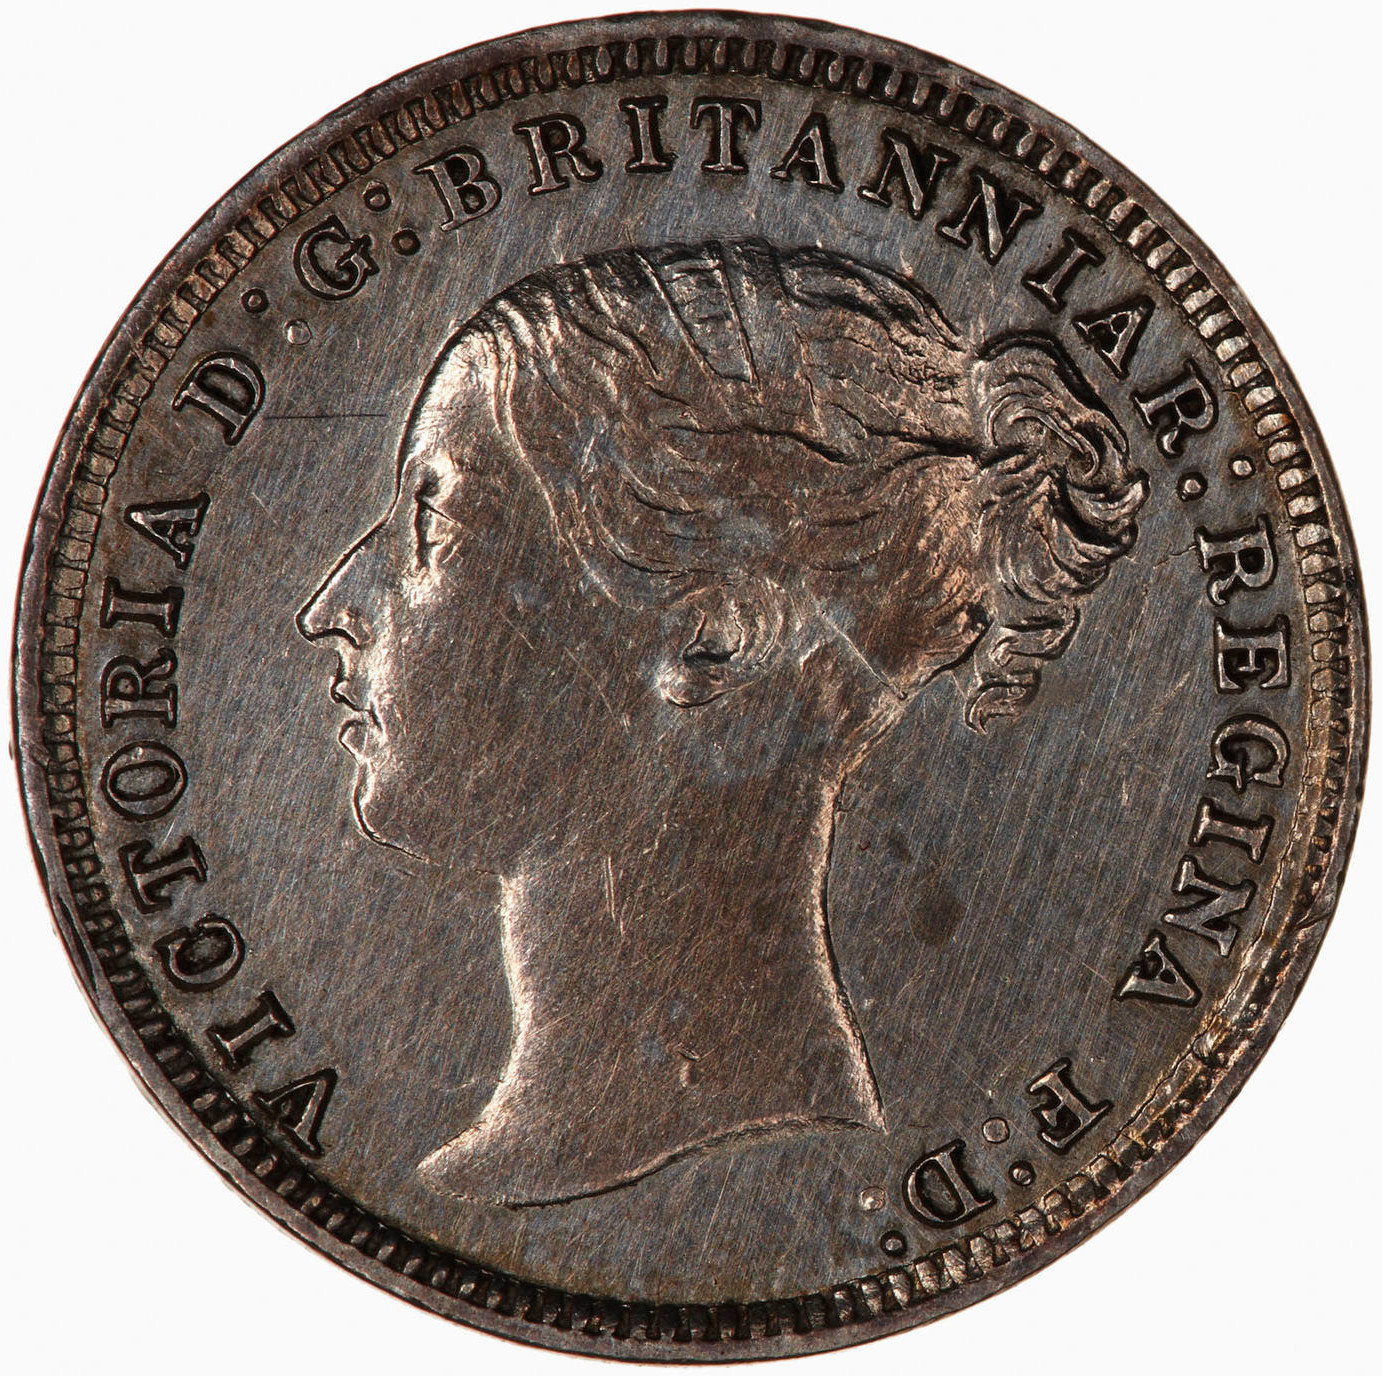 Threepence (First Design): Photo Coin - Threepence, Queen Victoria, Great Britain, 1877